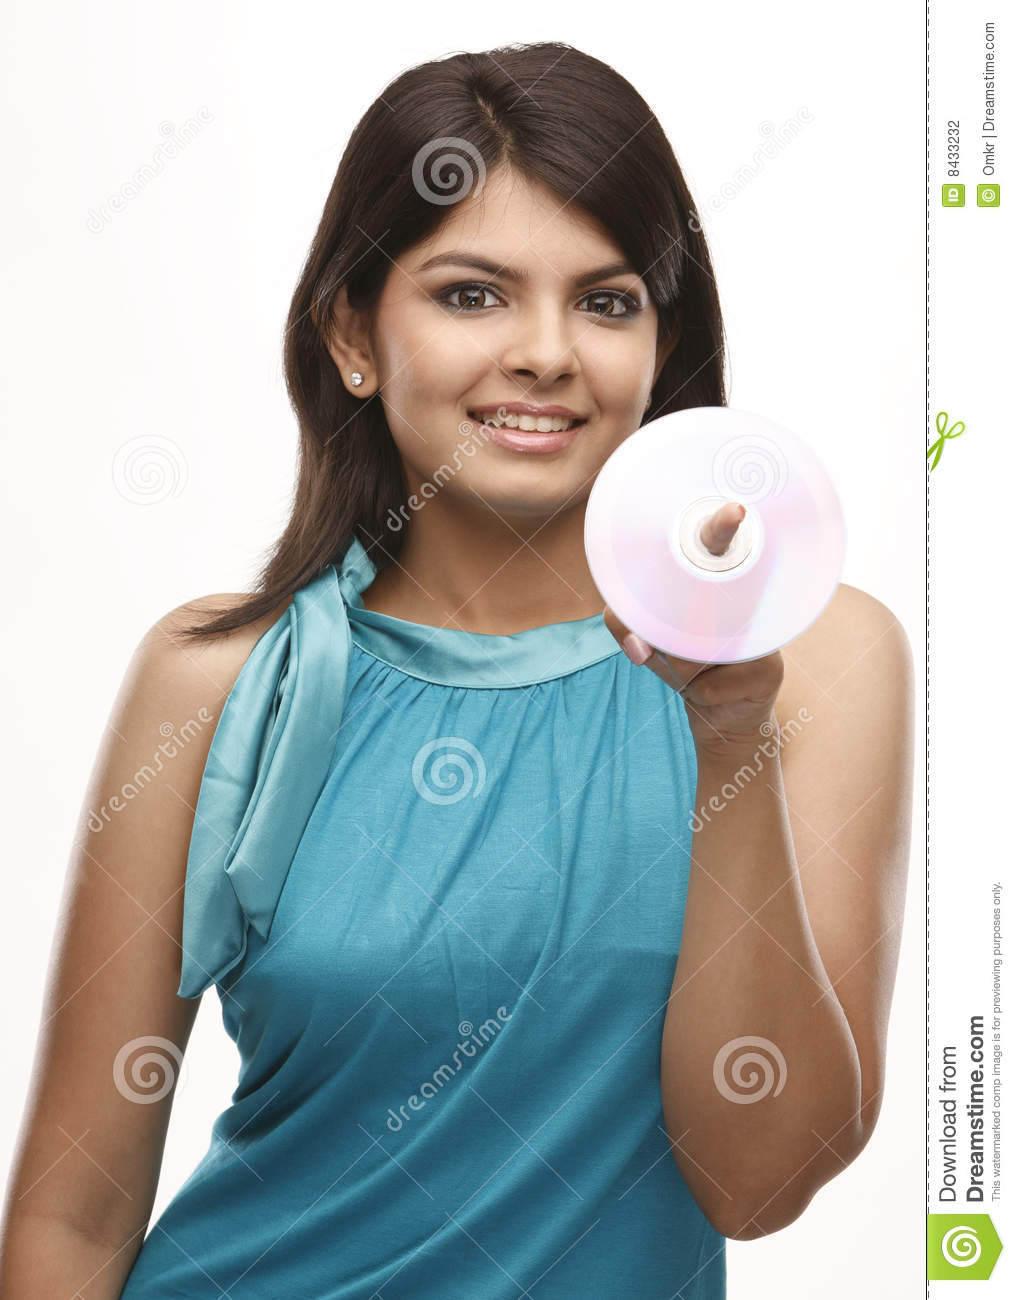 Smiling girl with the CD